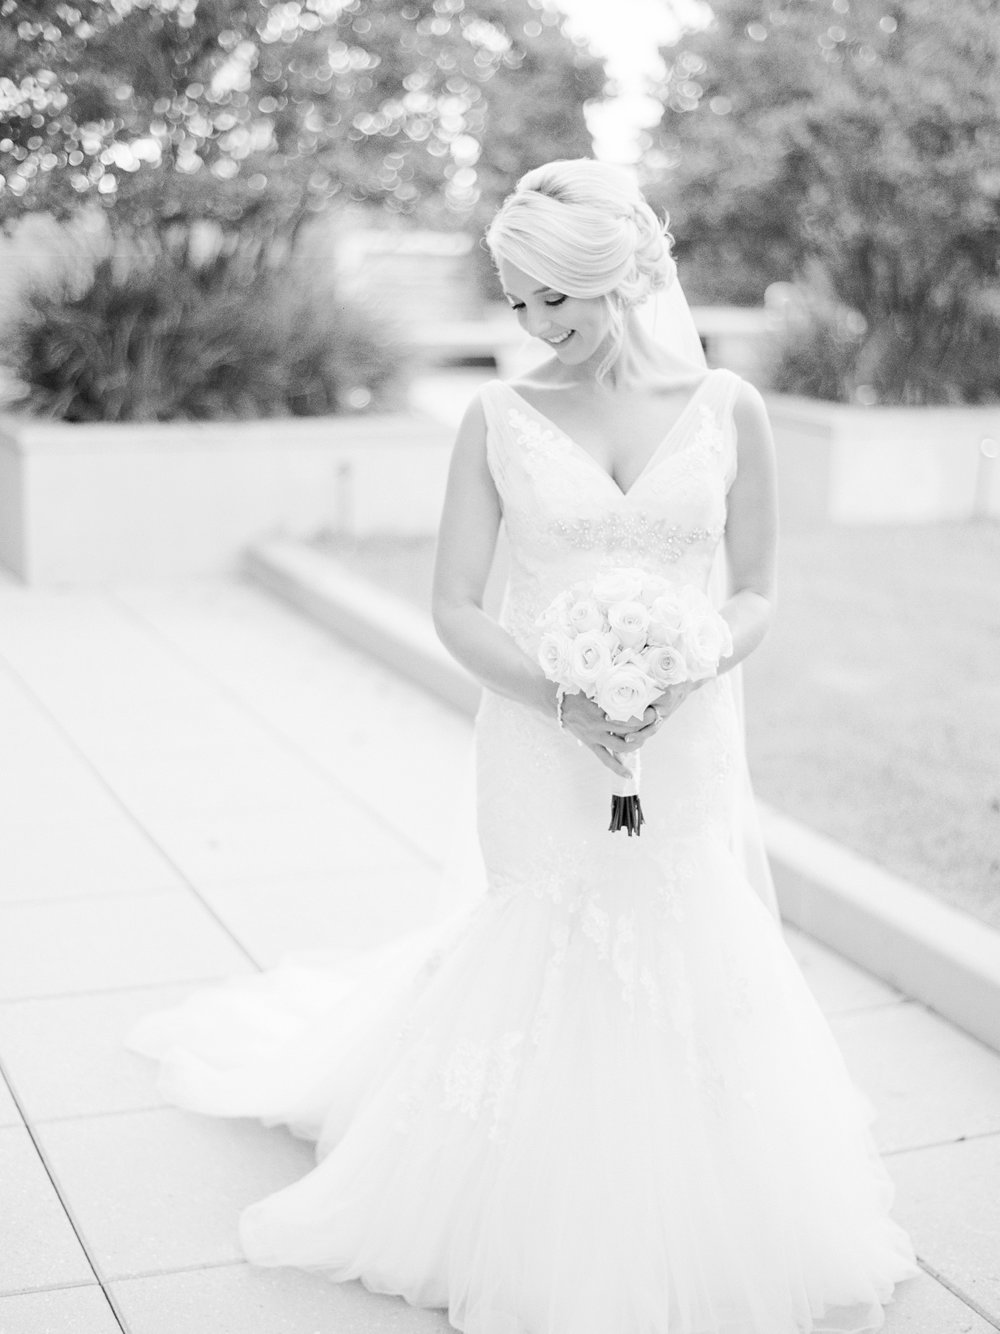 rooftop_martha stewart wedding_fine art_beautiful bride_birmingham wedding photographer_alabama wedding photographer_destin rosemary alys beach 30A florida luxury wedding photographer